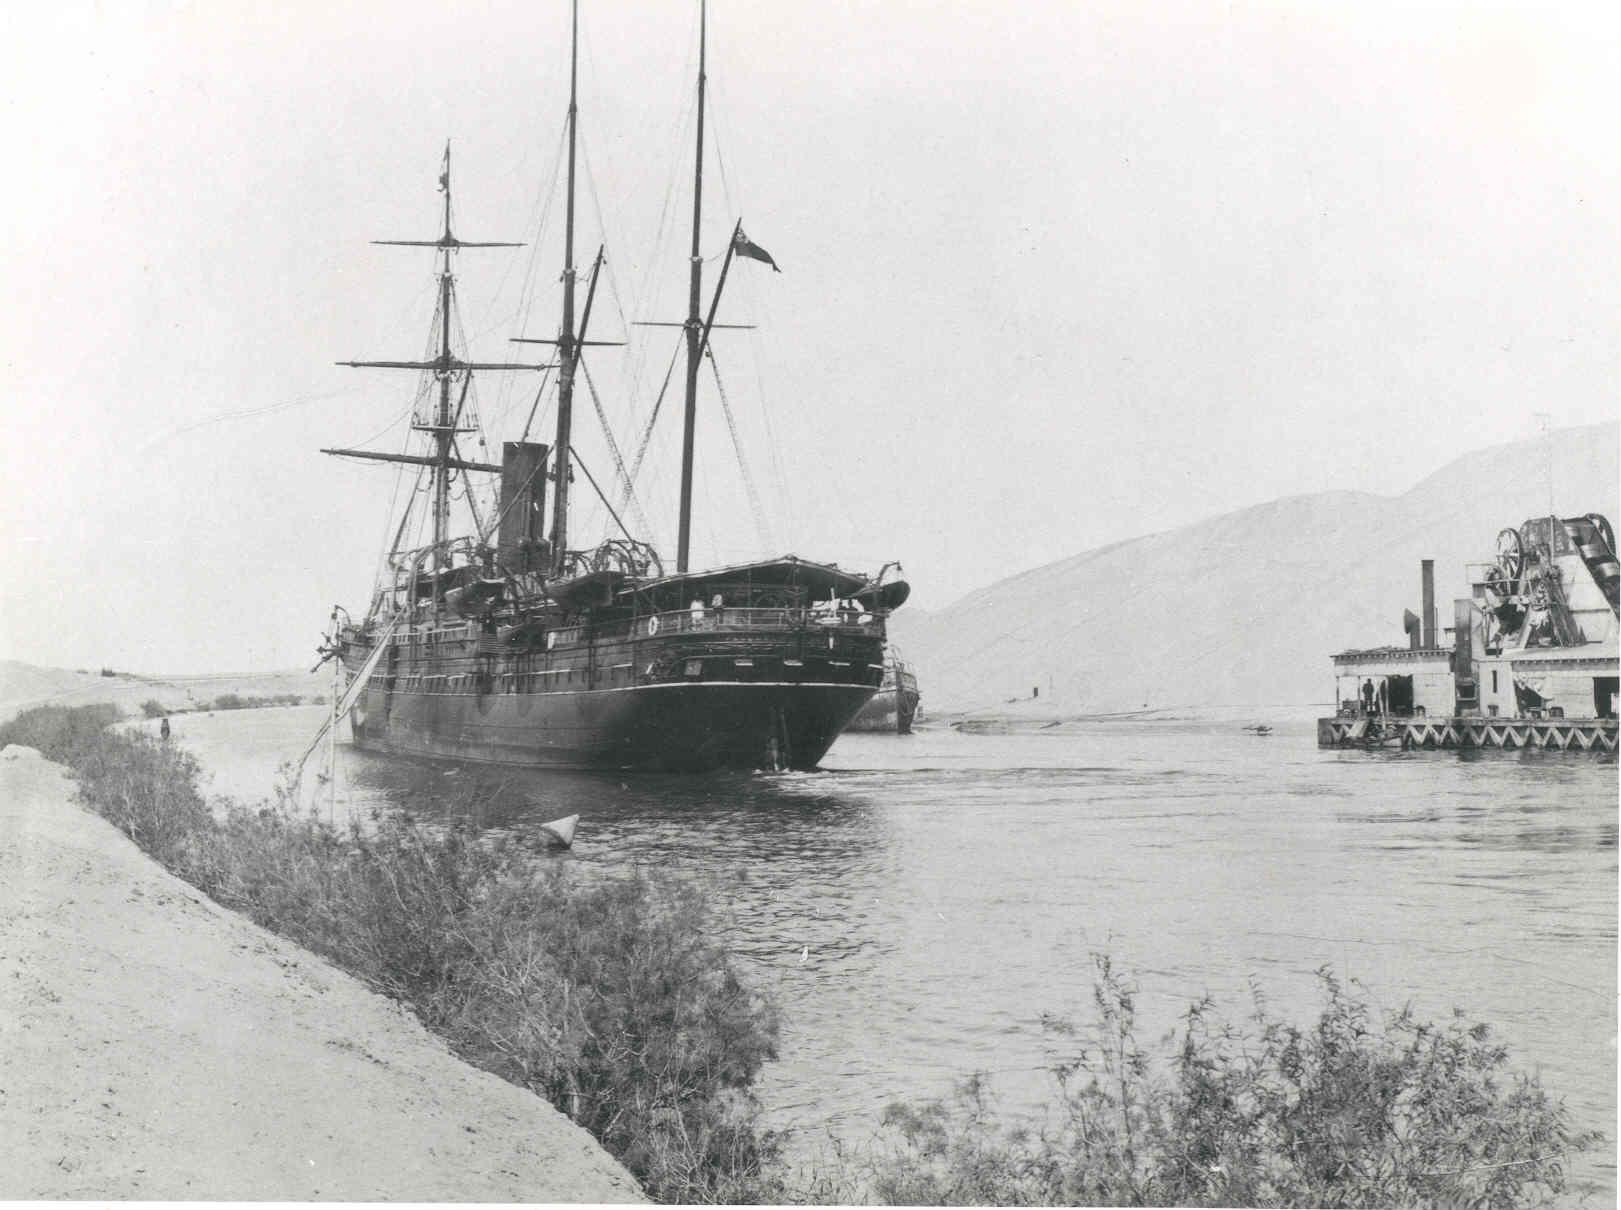 """Iron Screw Steamer """"Peshawur"""", built in 1871 by Caird & Co - Greenock.  Owned by P & O Steam Navigation Co until 1899 when she was sold for further trading. Tonnage:  3748 gross, 2158 net Official Number:  65641 Dimensions:  length 378')' ,breadth 42'7"""